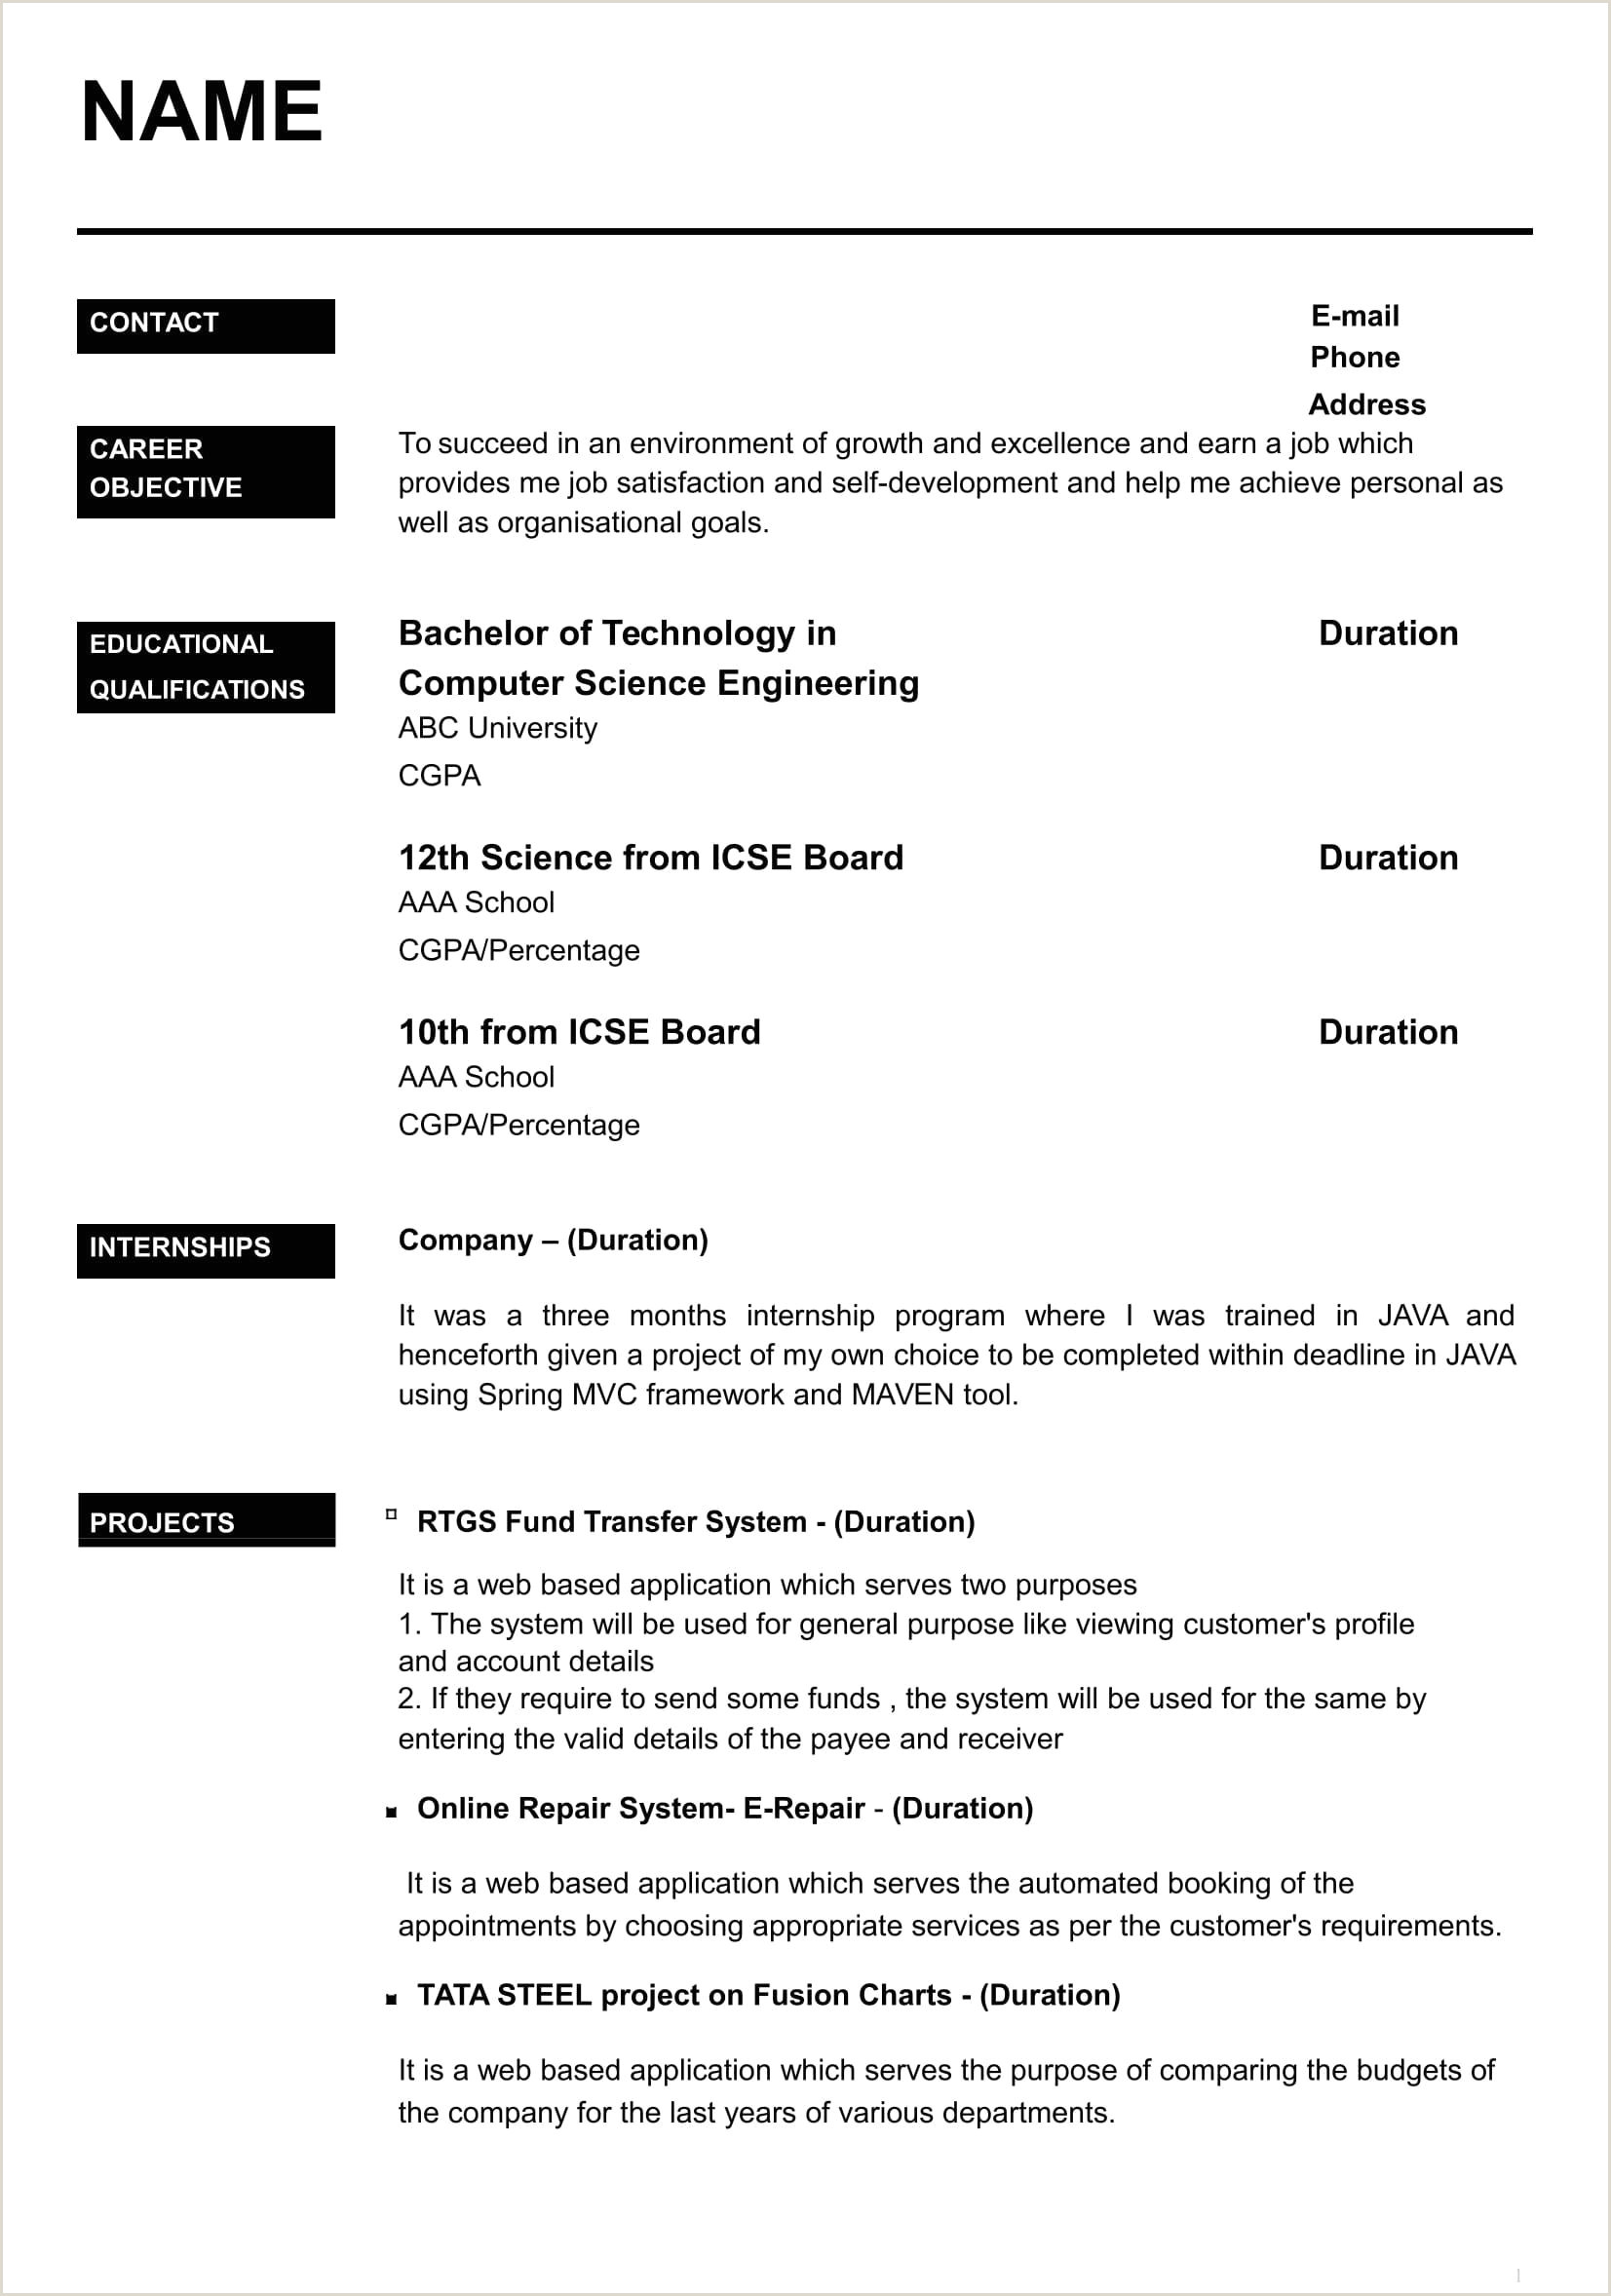 Resume Format For Job Ms Word Cv For Freshers In Word Google सर्च